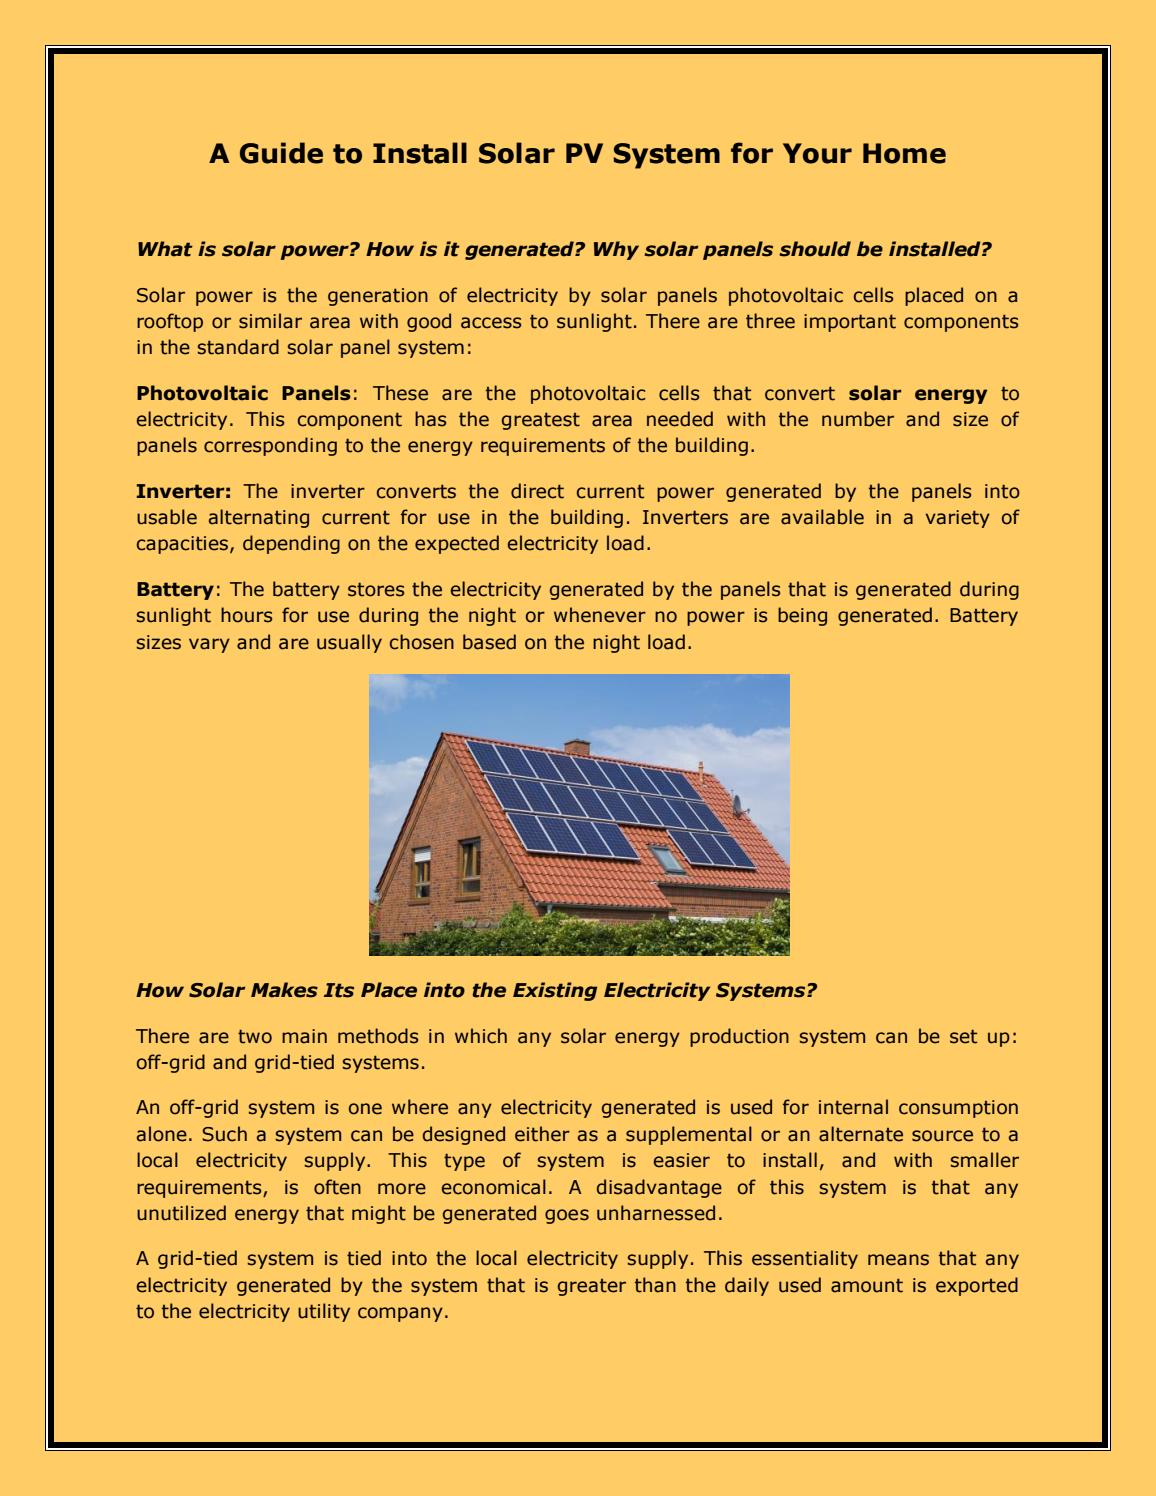 A Guide to Install Solar PV System for Your Home by Daniel